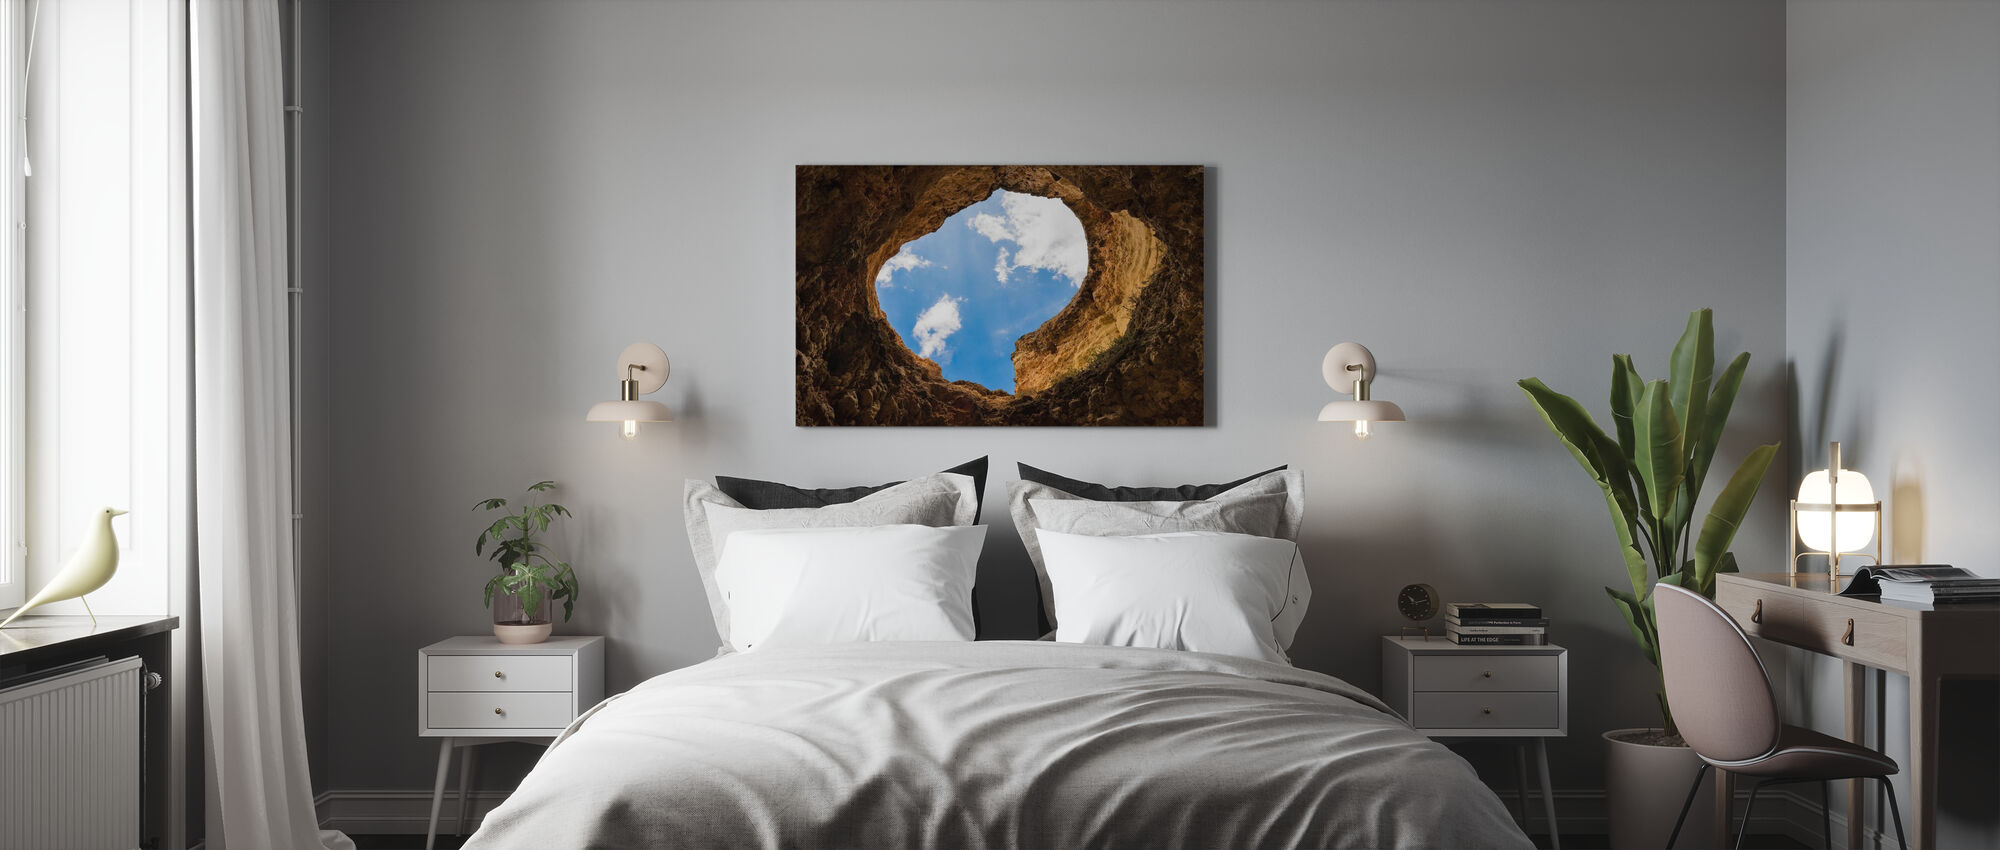 Cave Hole - Canvas print - Bedroom